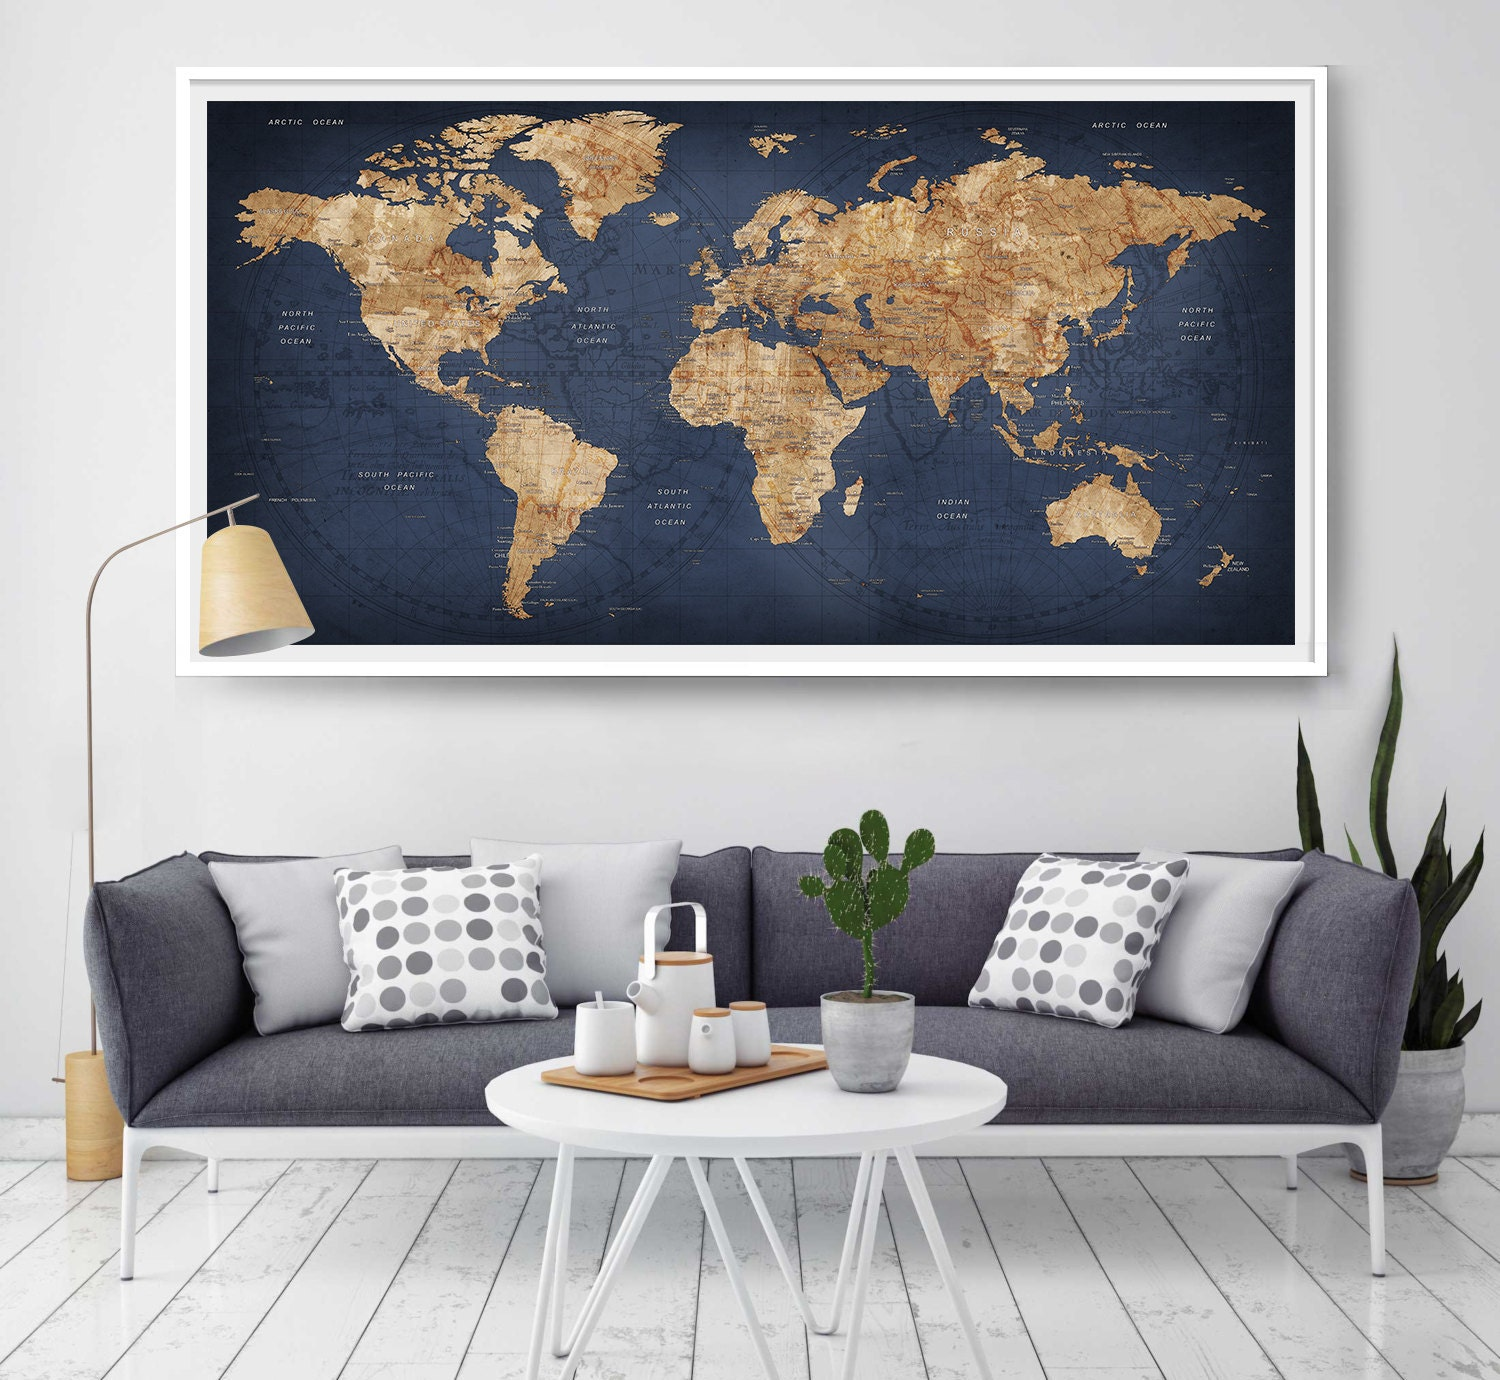 world map push pin large world map abstract world map. Black Bedroom Furniture Sets. Home Design Ideas